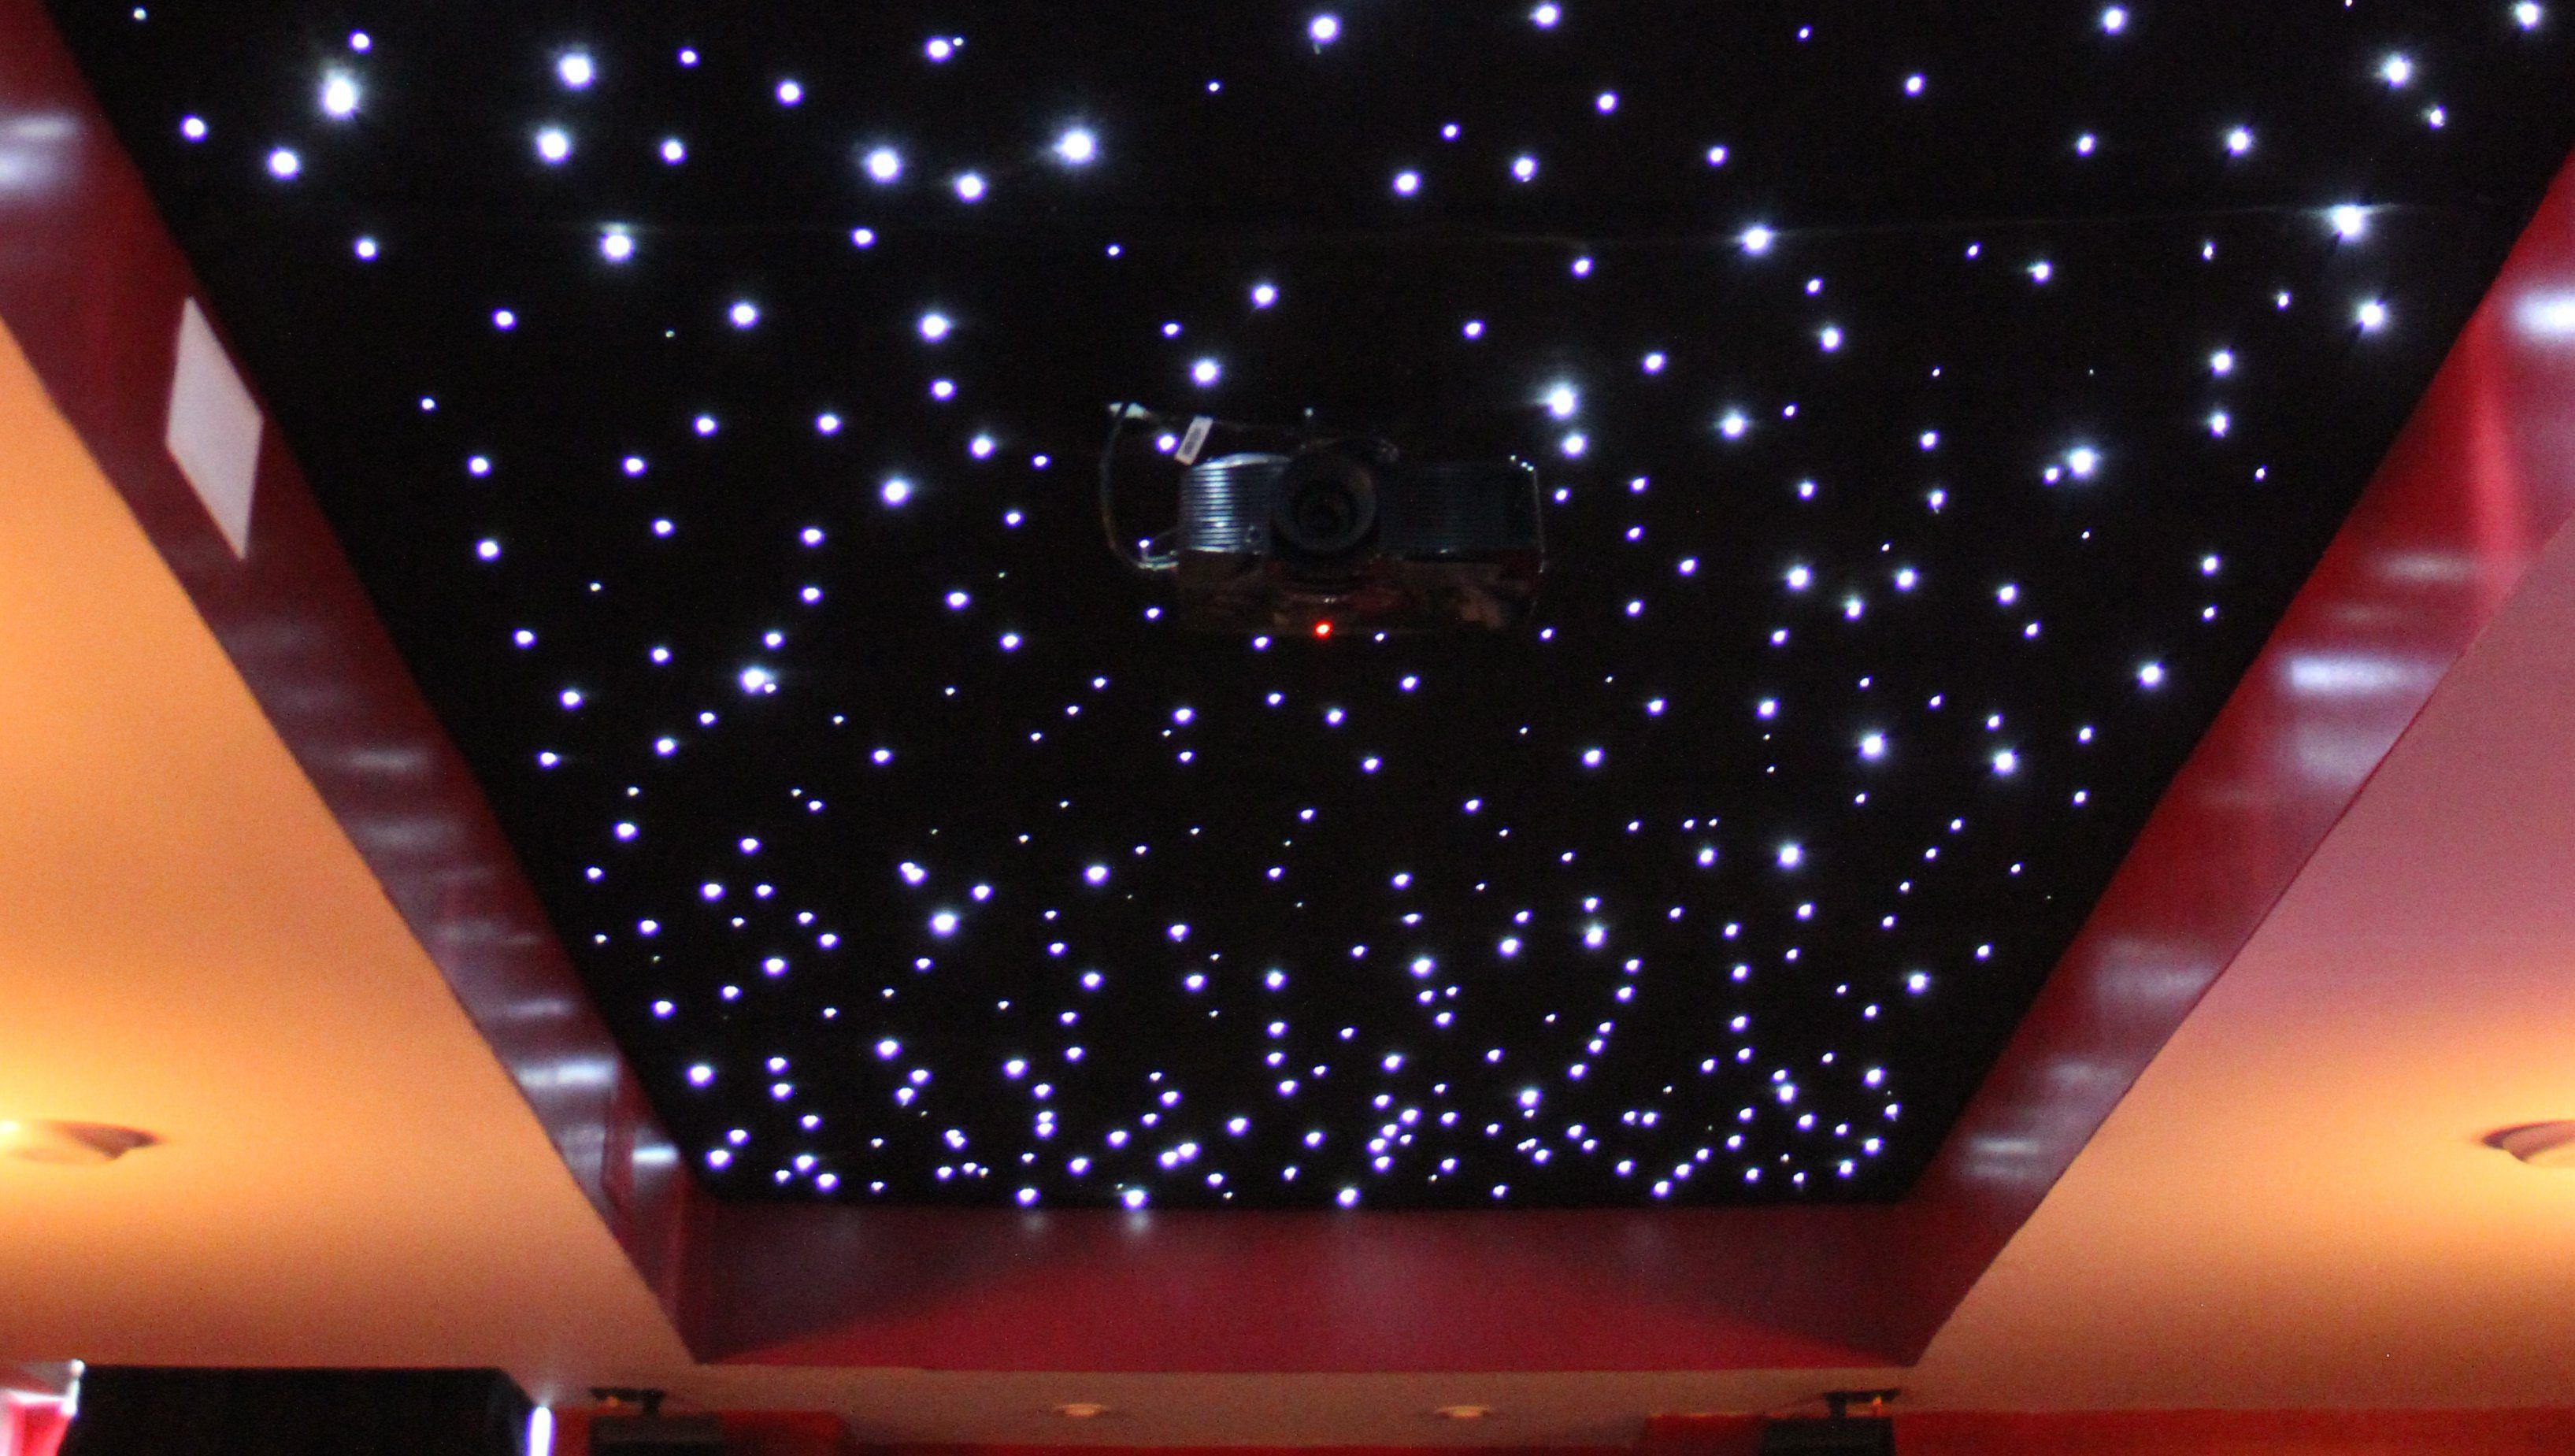 Installing A Fiber Optic Starfield Ceiling Make Star Ceiling Starry Ceiling Star Lights On Ceiling